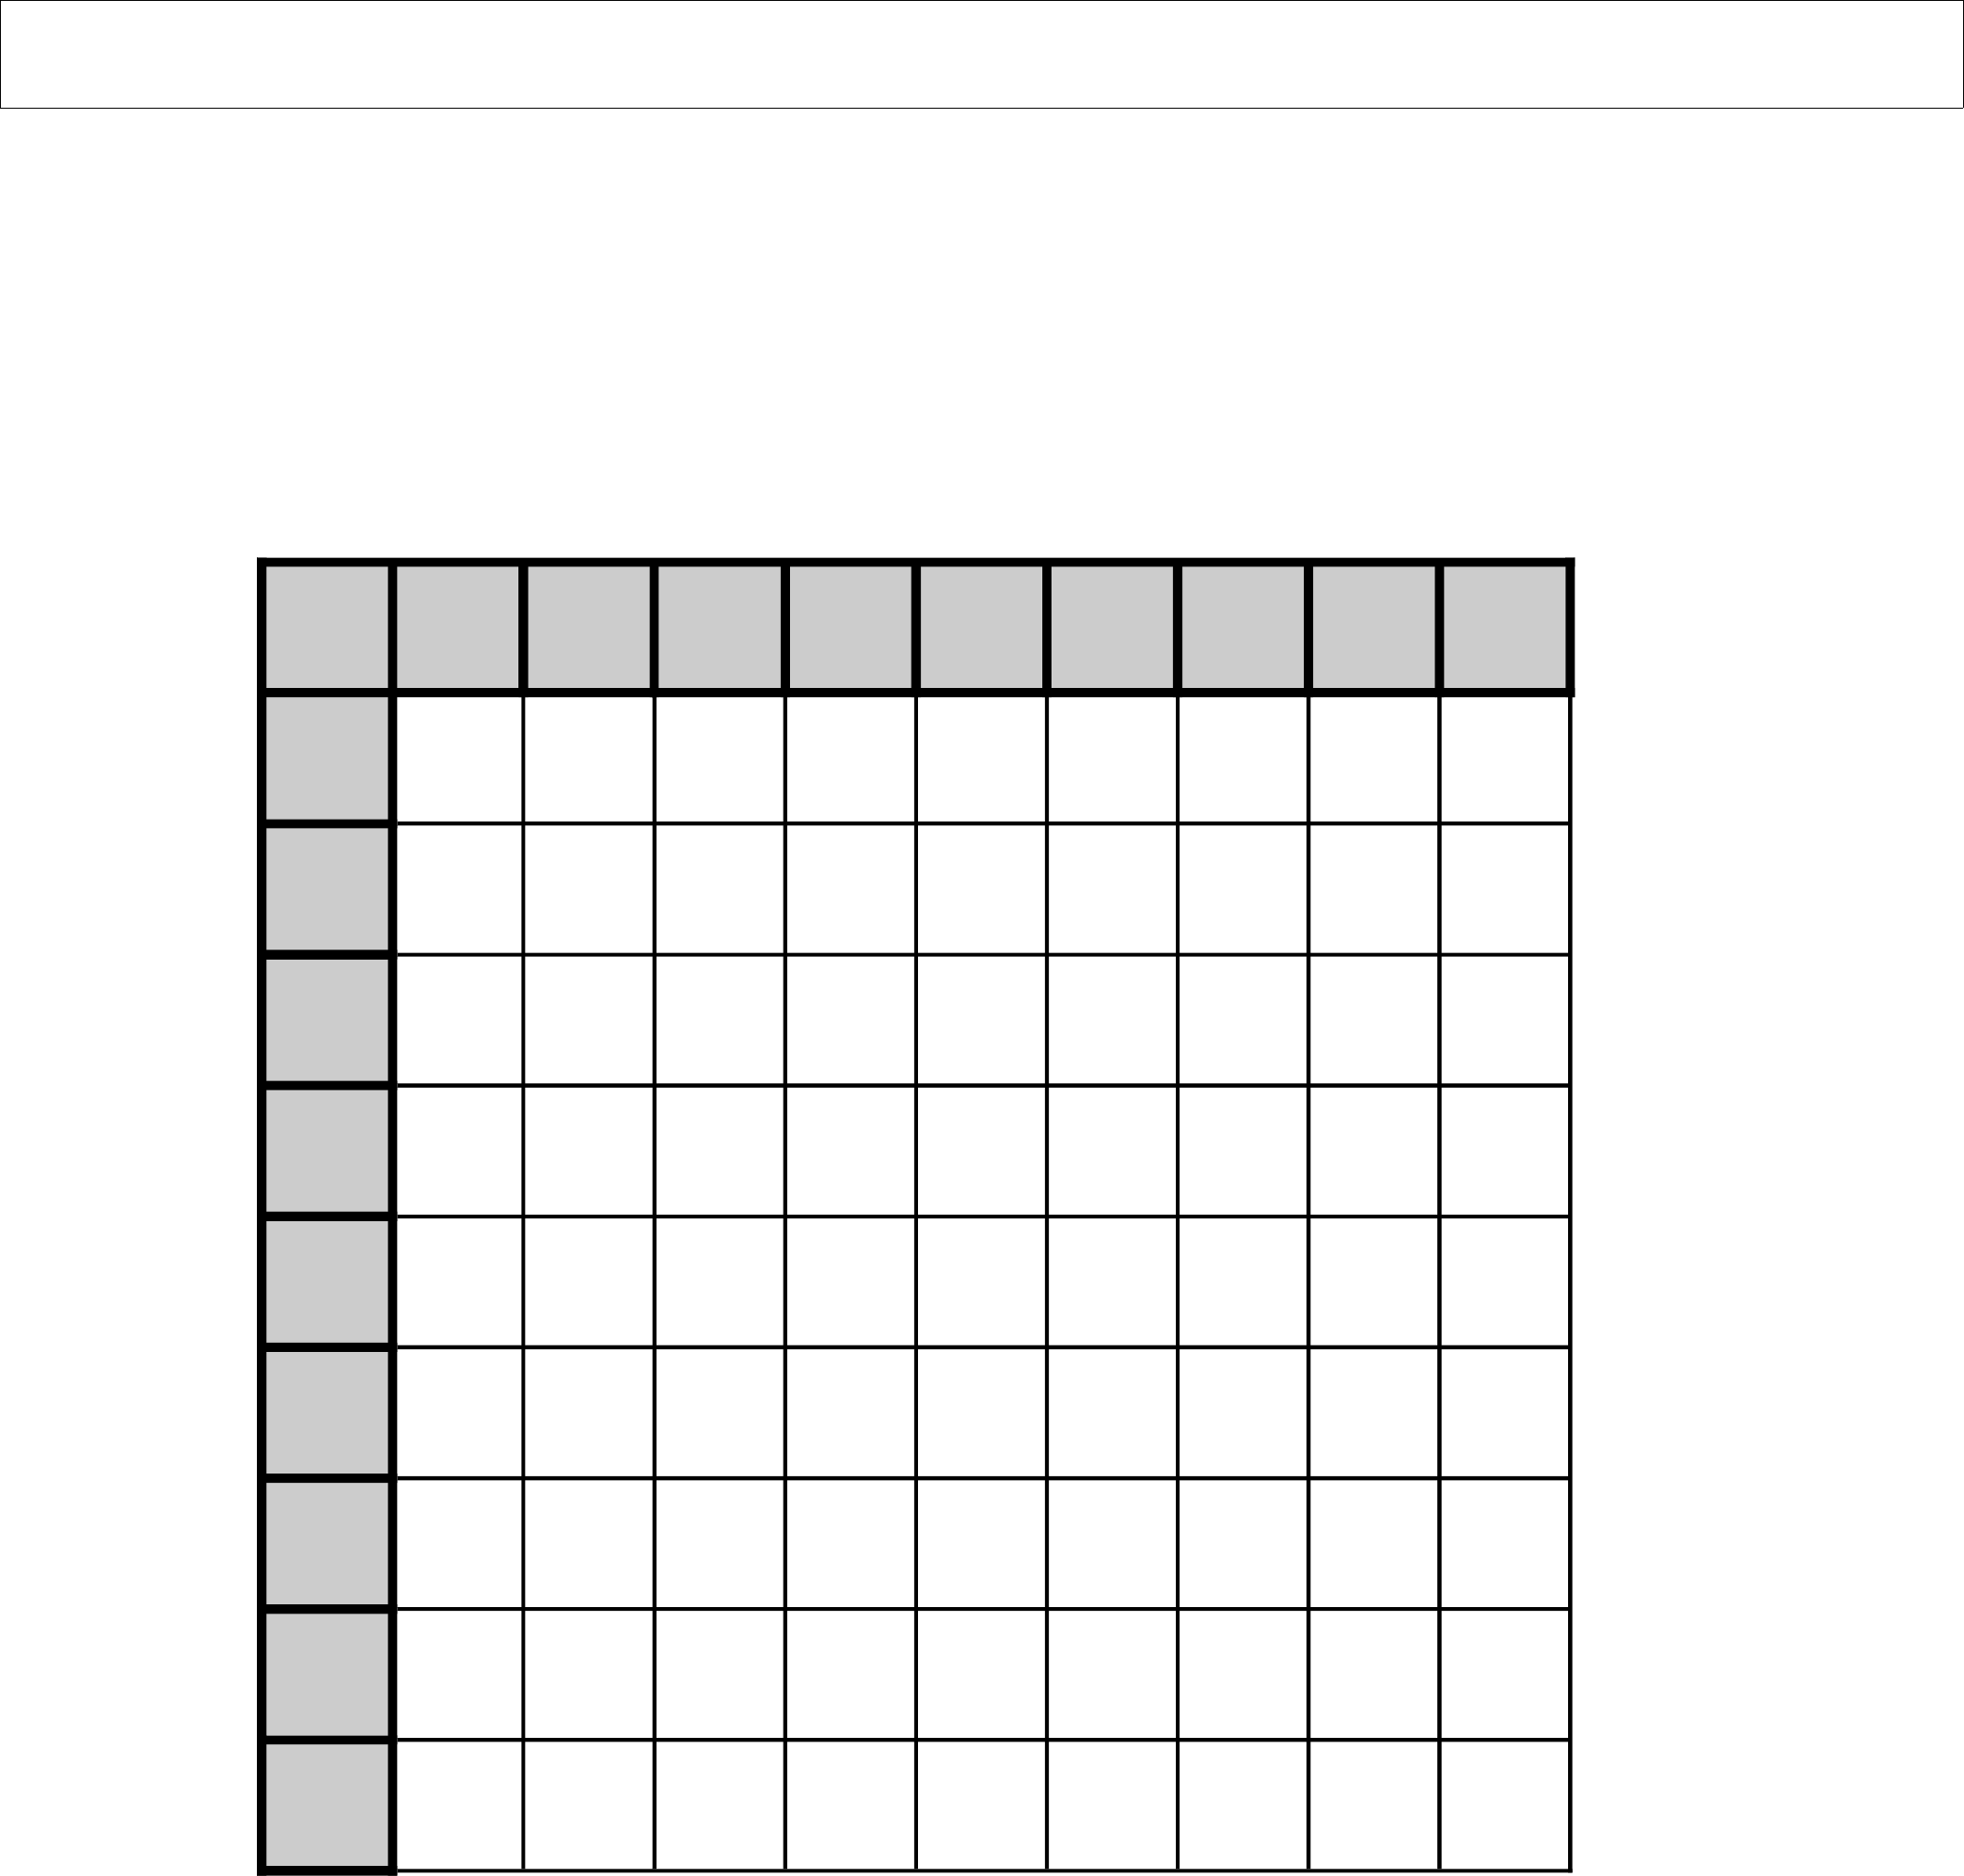 math worksheet : printable blank multiplication table 1 12  times table grid to  : Blank Multiplication Table Worksheet